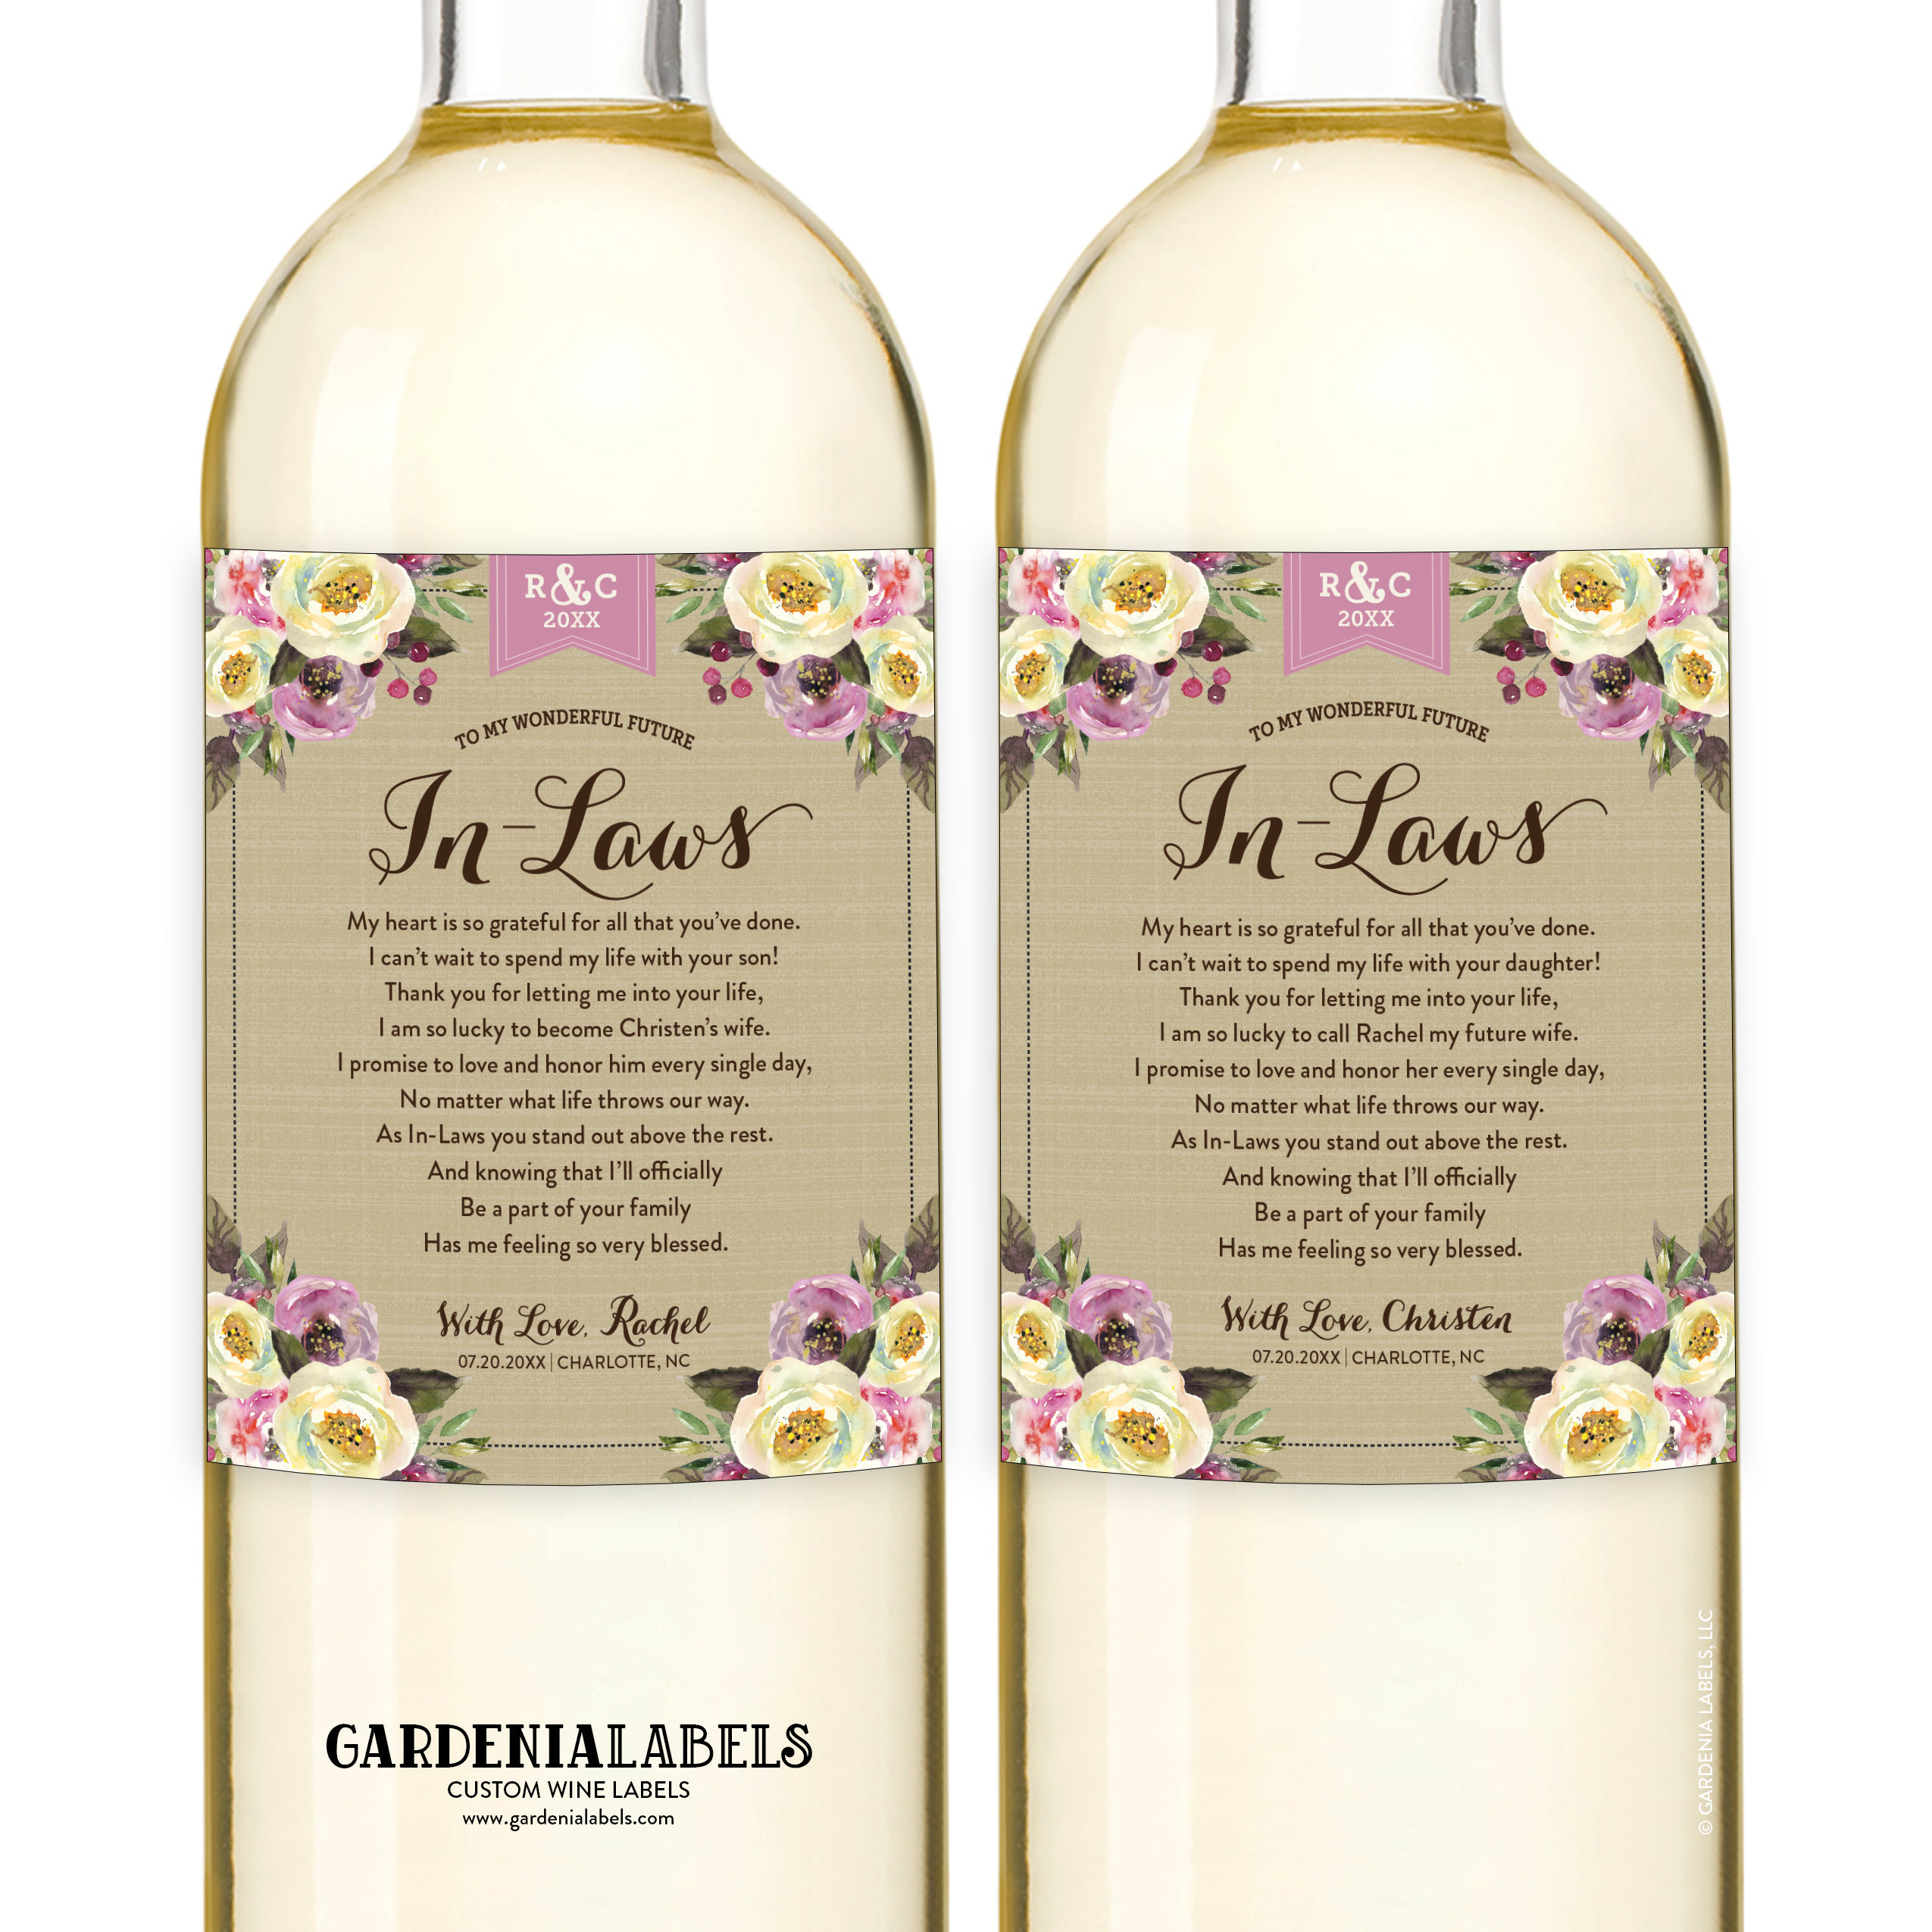 Wine For Wedding Gift: In-Law Wine Labels Wedding Gift For Parents Of The Bride